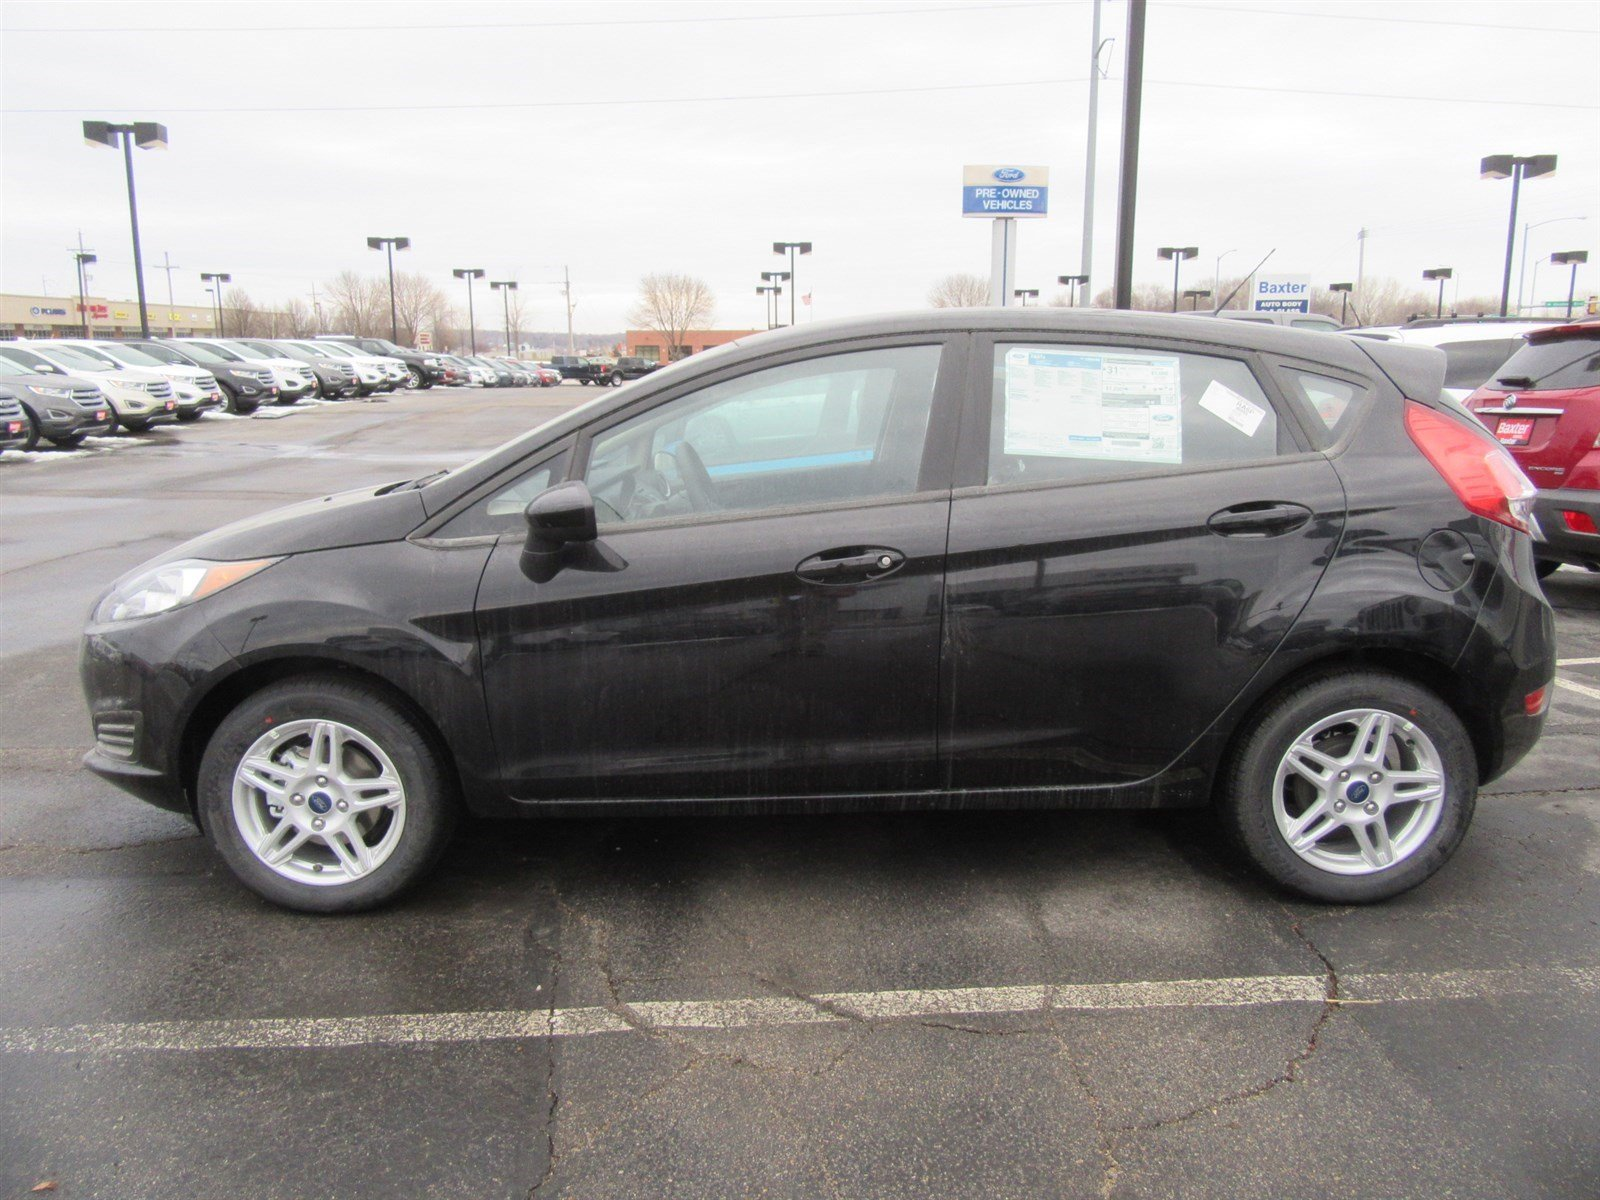 Used Vehicles At Baxter Ford Ford Dealership In Omaha Ne - Ford dealers omaha